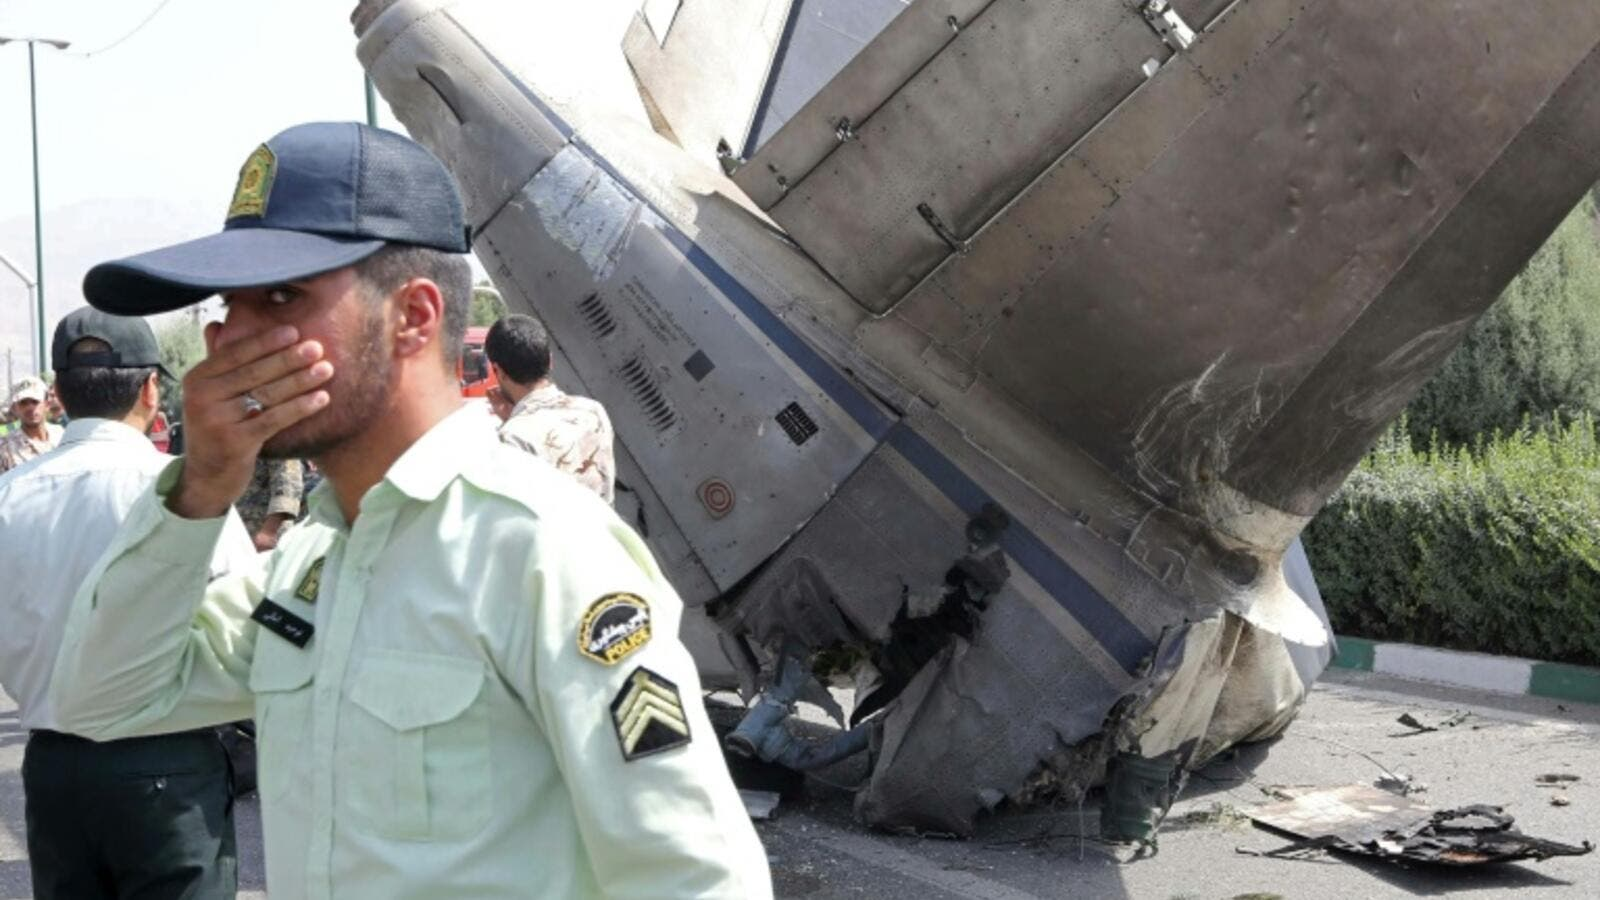 Iranian security forces stand at the scene of a previous plane crash near Tehran's Mehrabad airport on August 10, 2014. (AFP/ File)